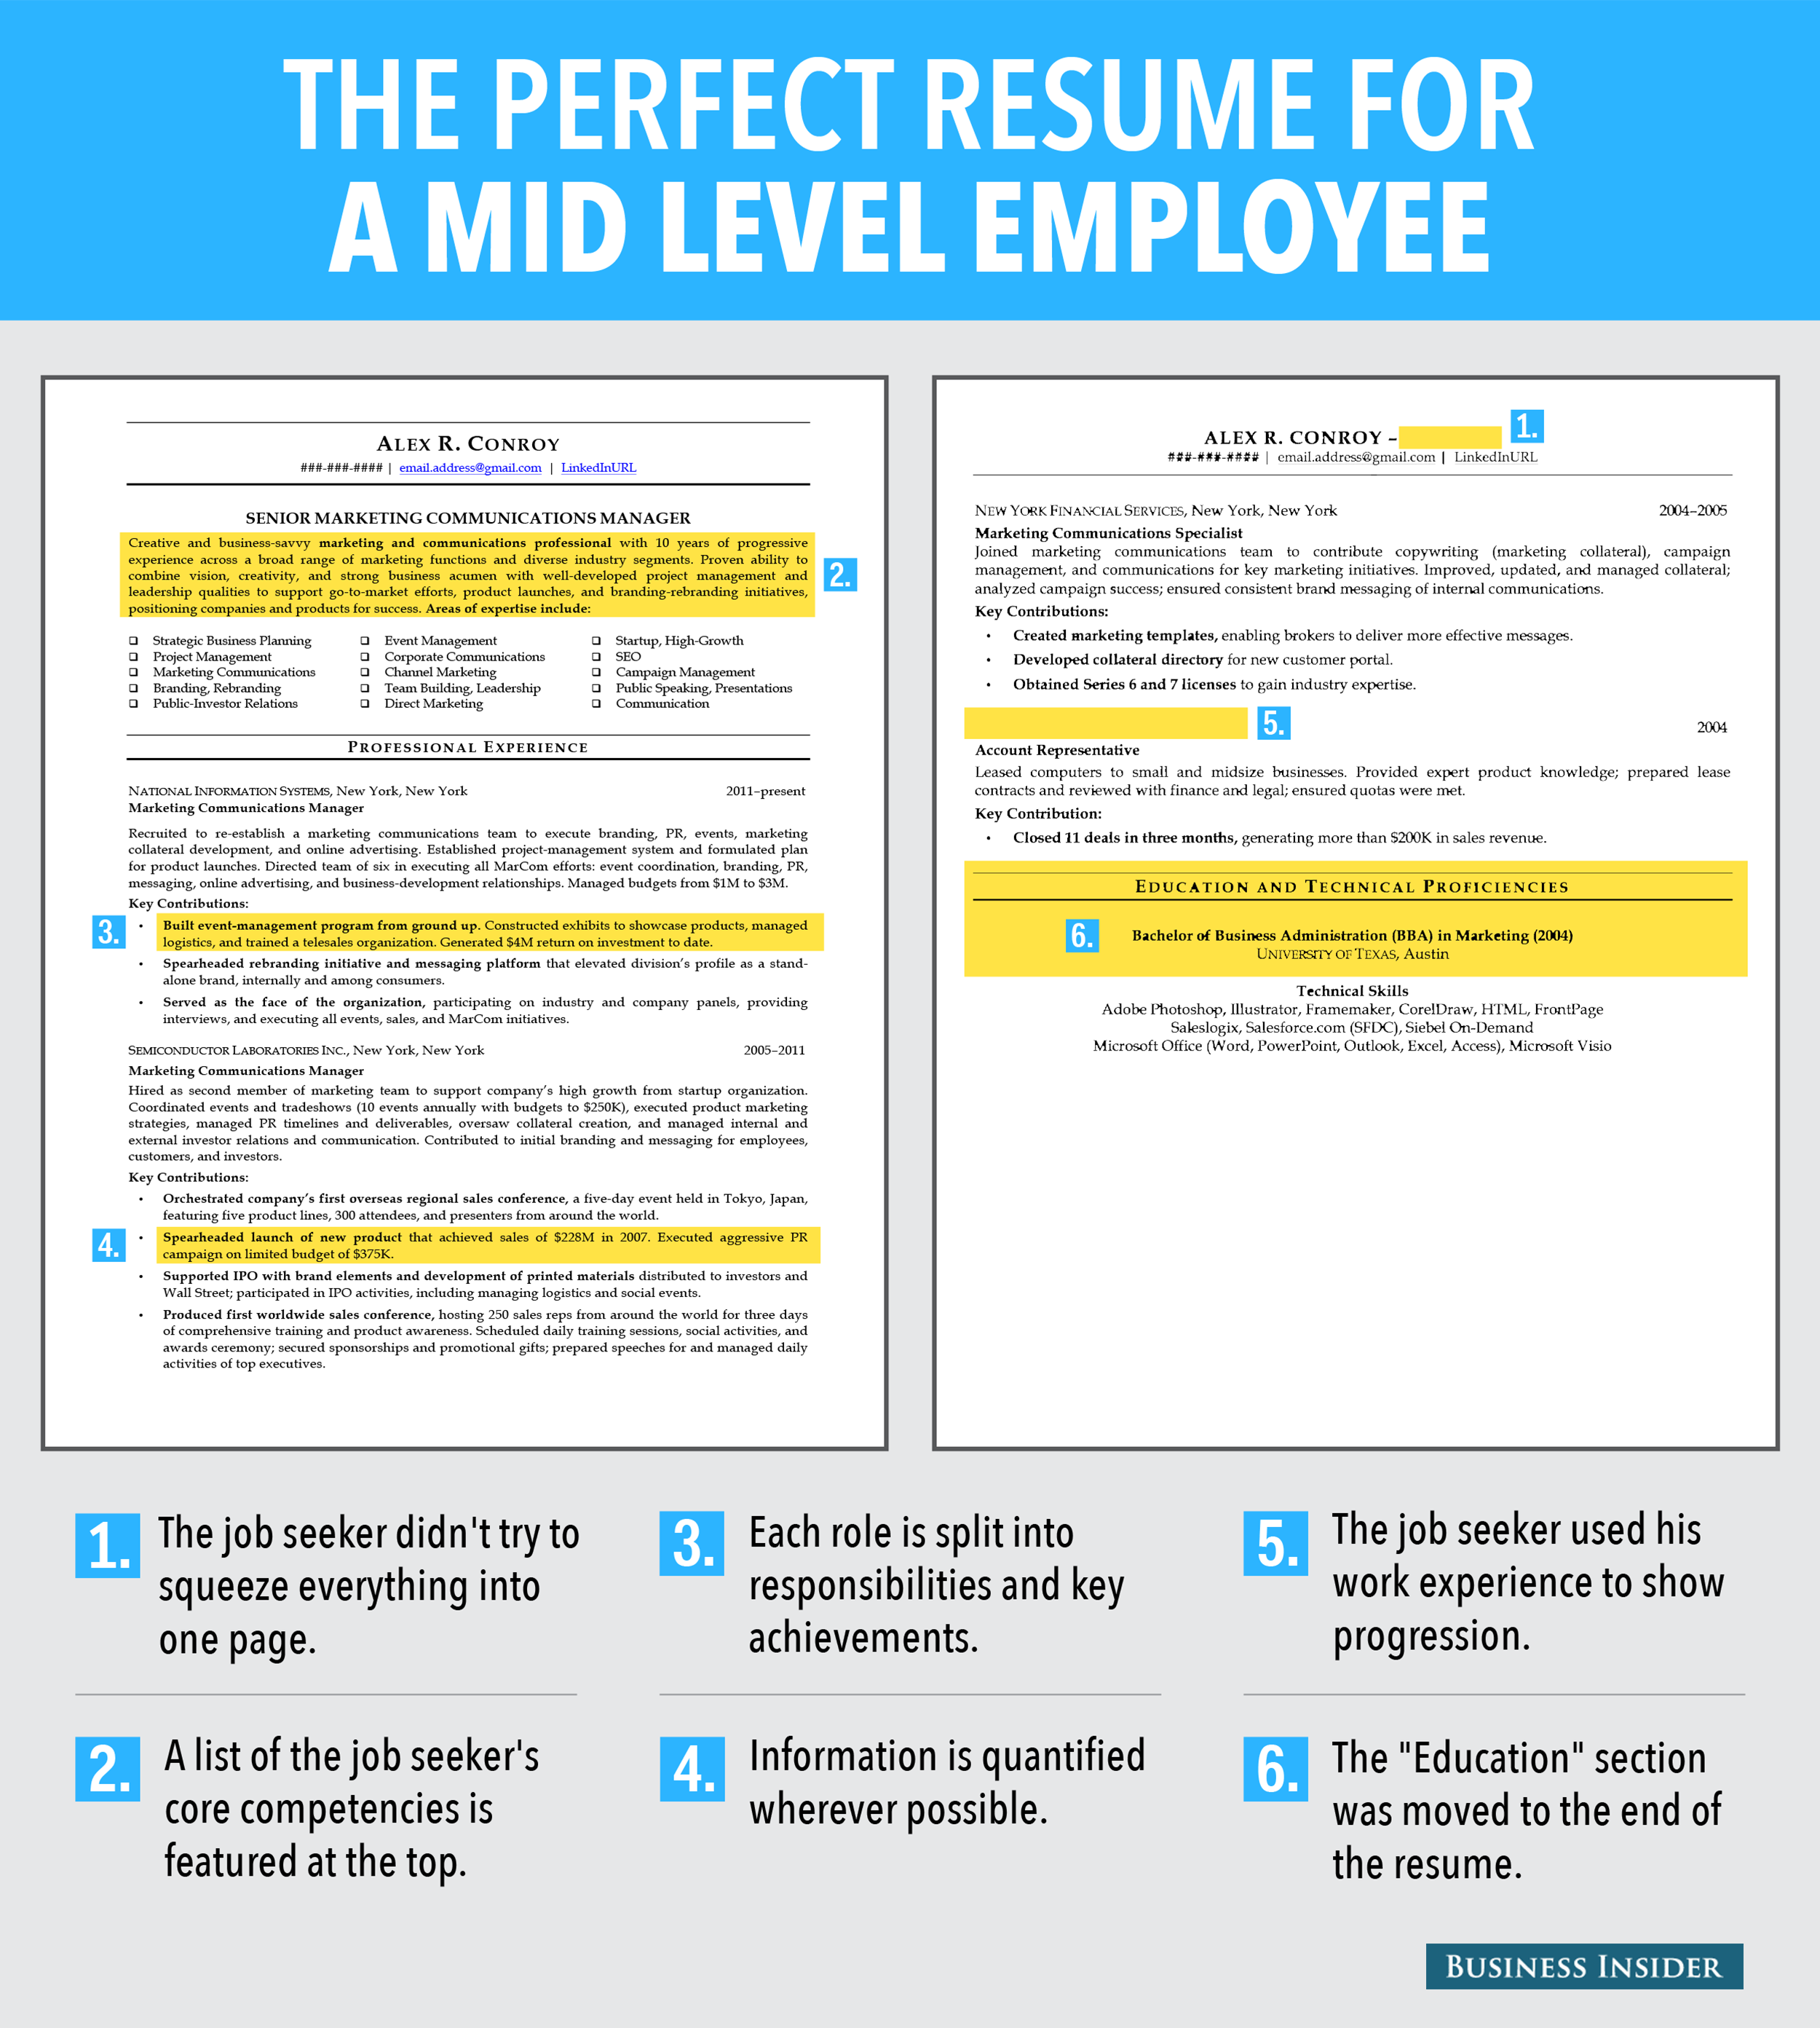 Reasons This Is An Excellent Resume For A MidLevel Employee